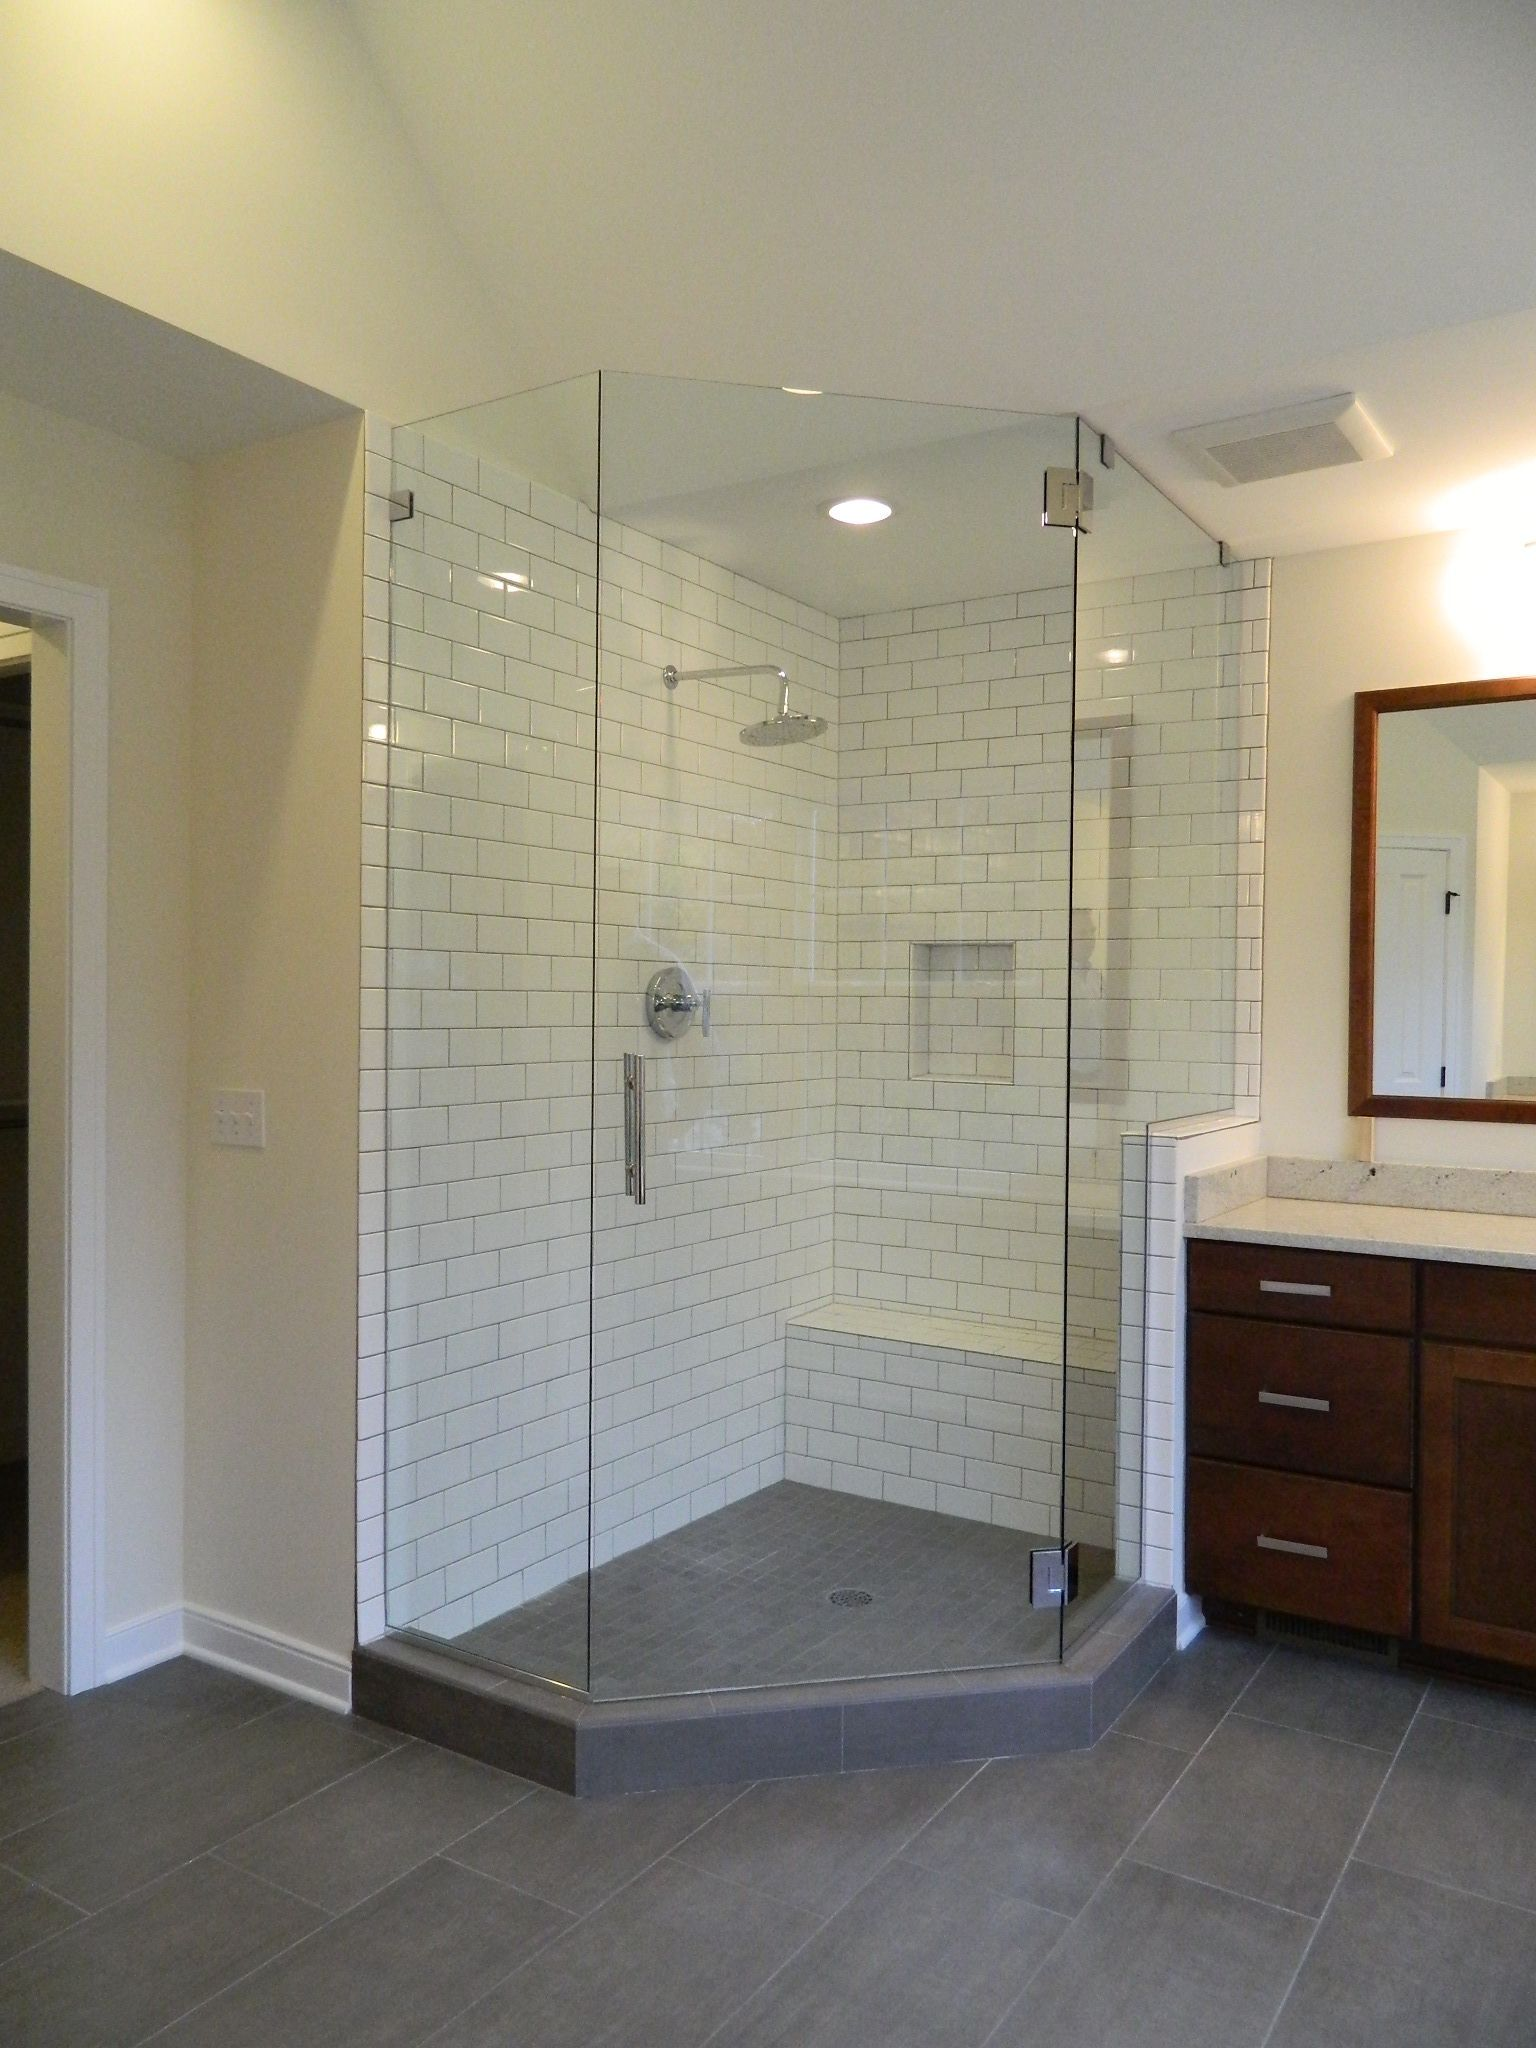 10 Ideas About Walkin Shower With Seat & Without Seat